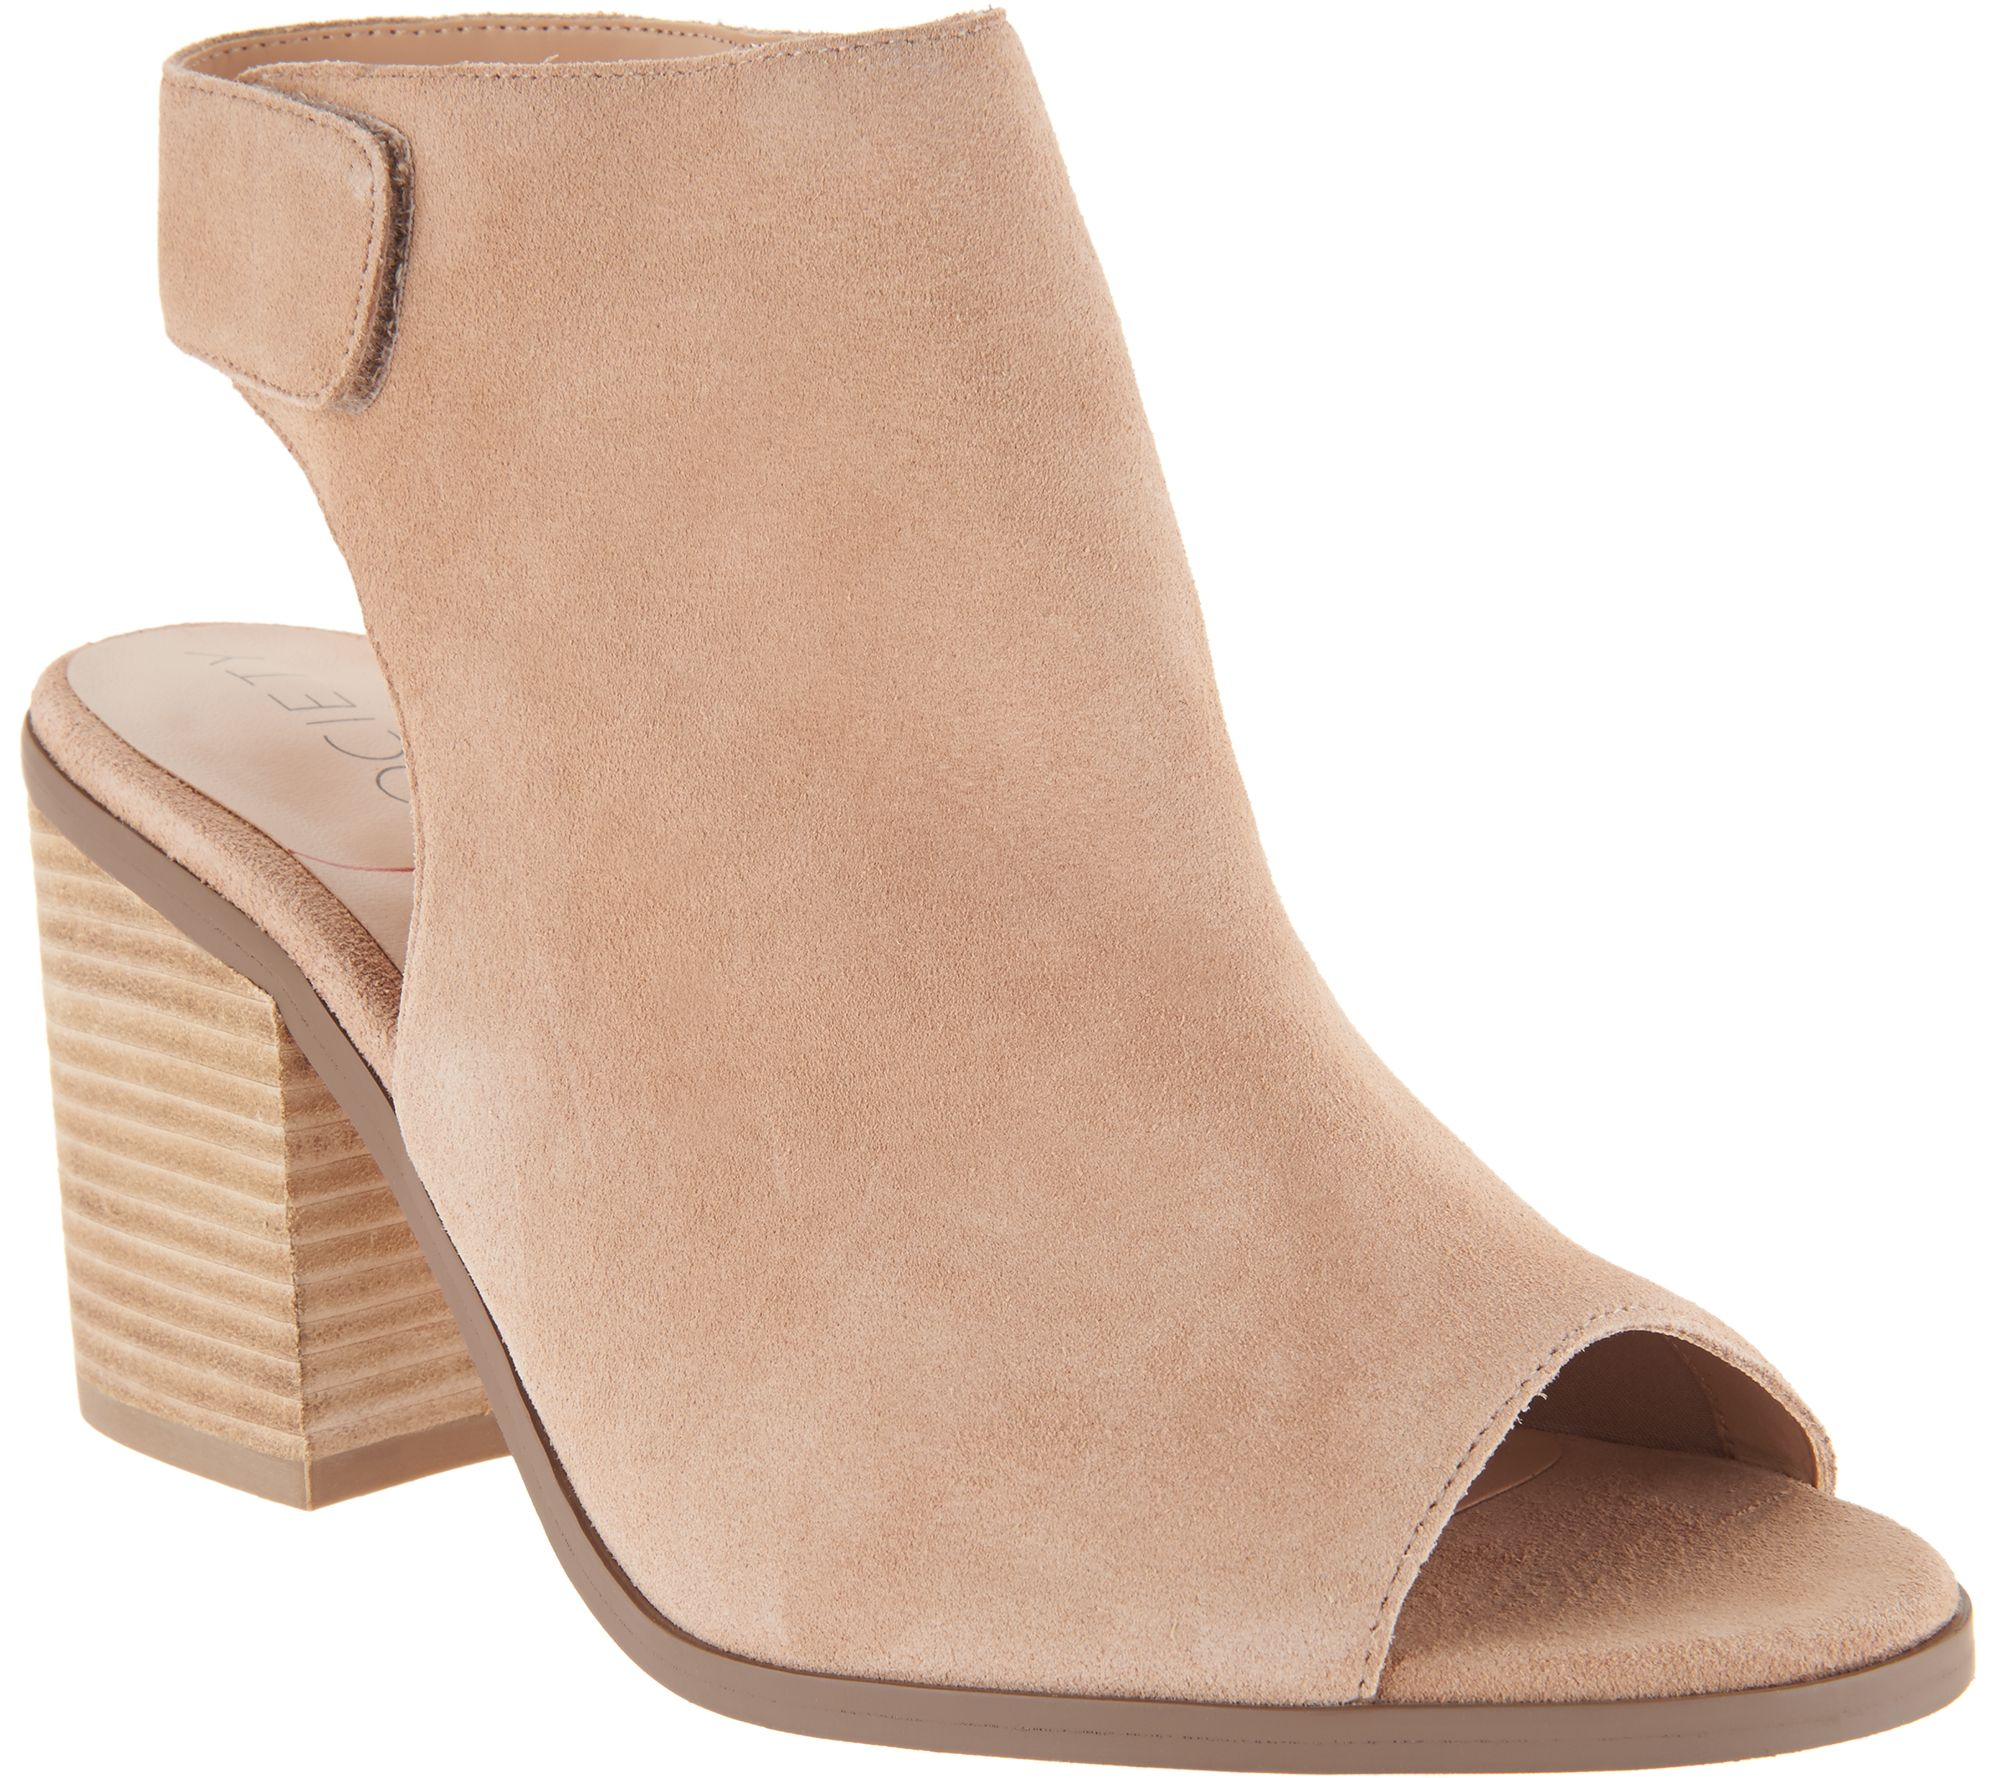 3fc0f0967 Sole Society Suede Peep-Toe Ankle Booties - Jagger - Page 1 — QVC.com